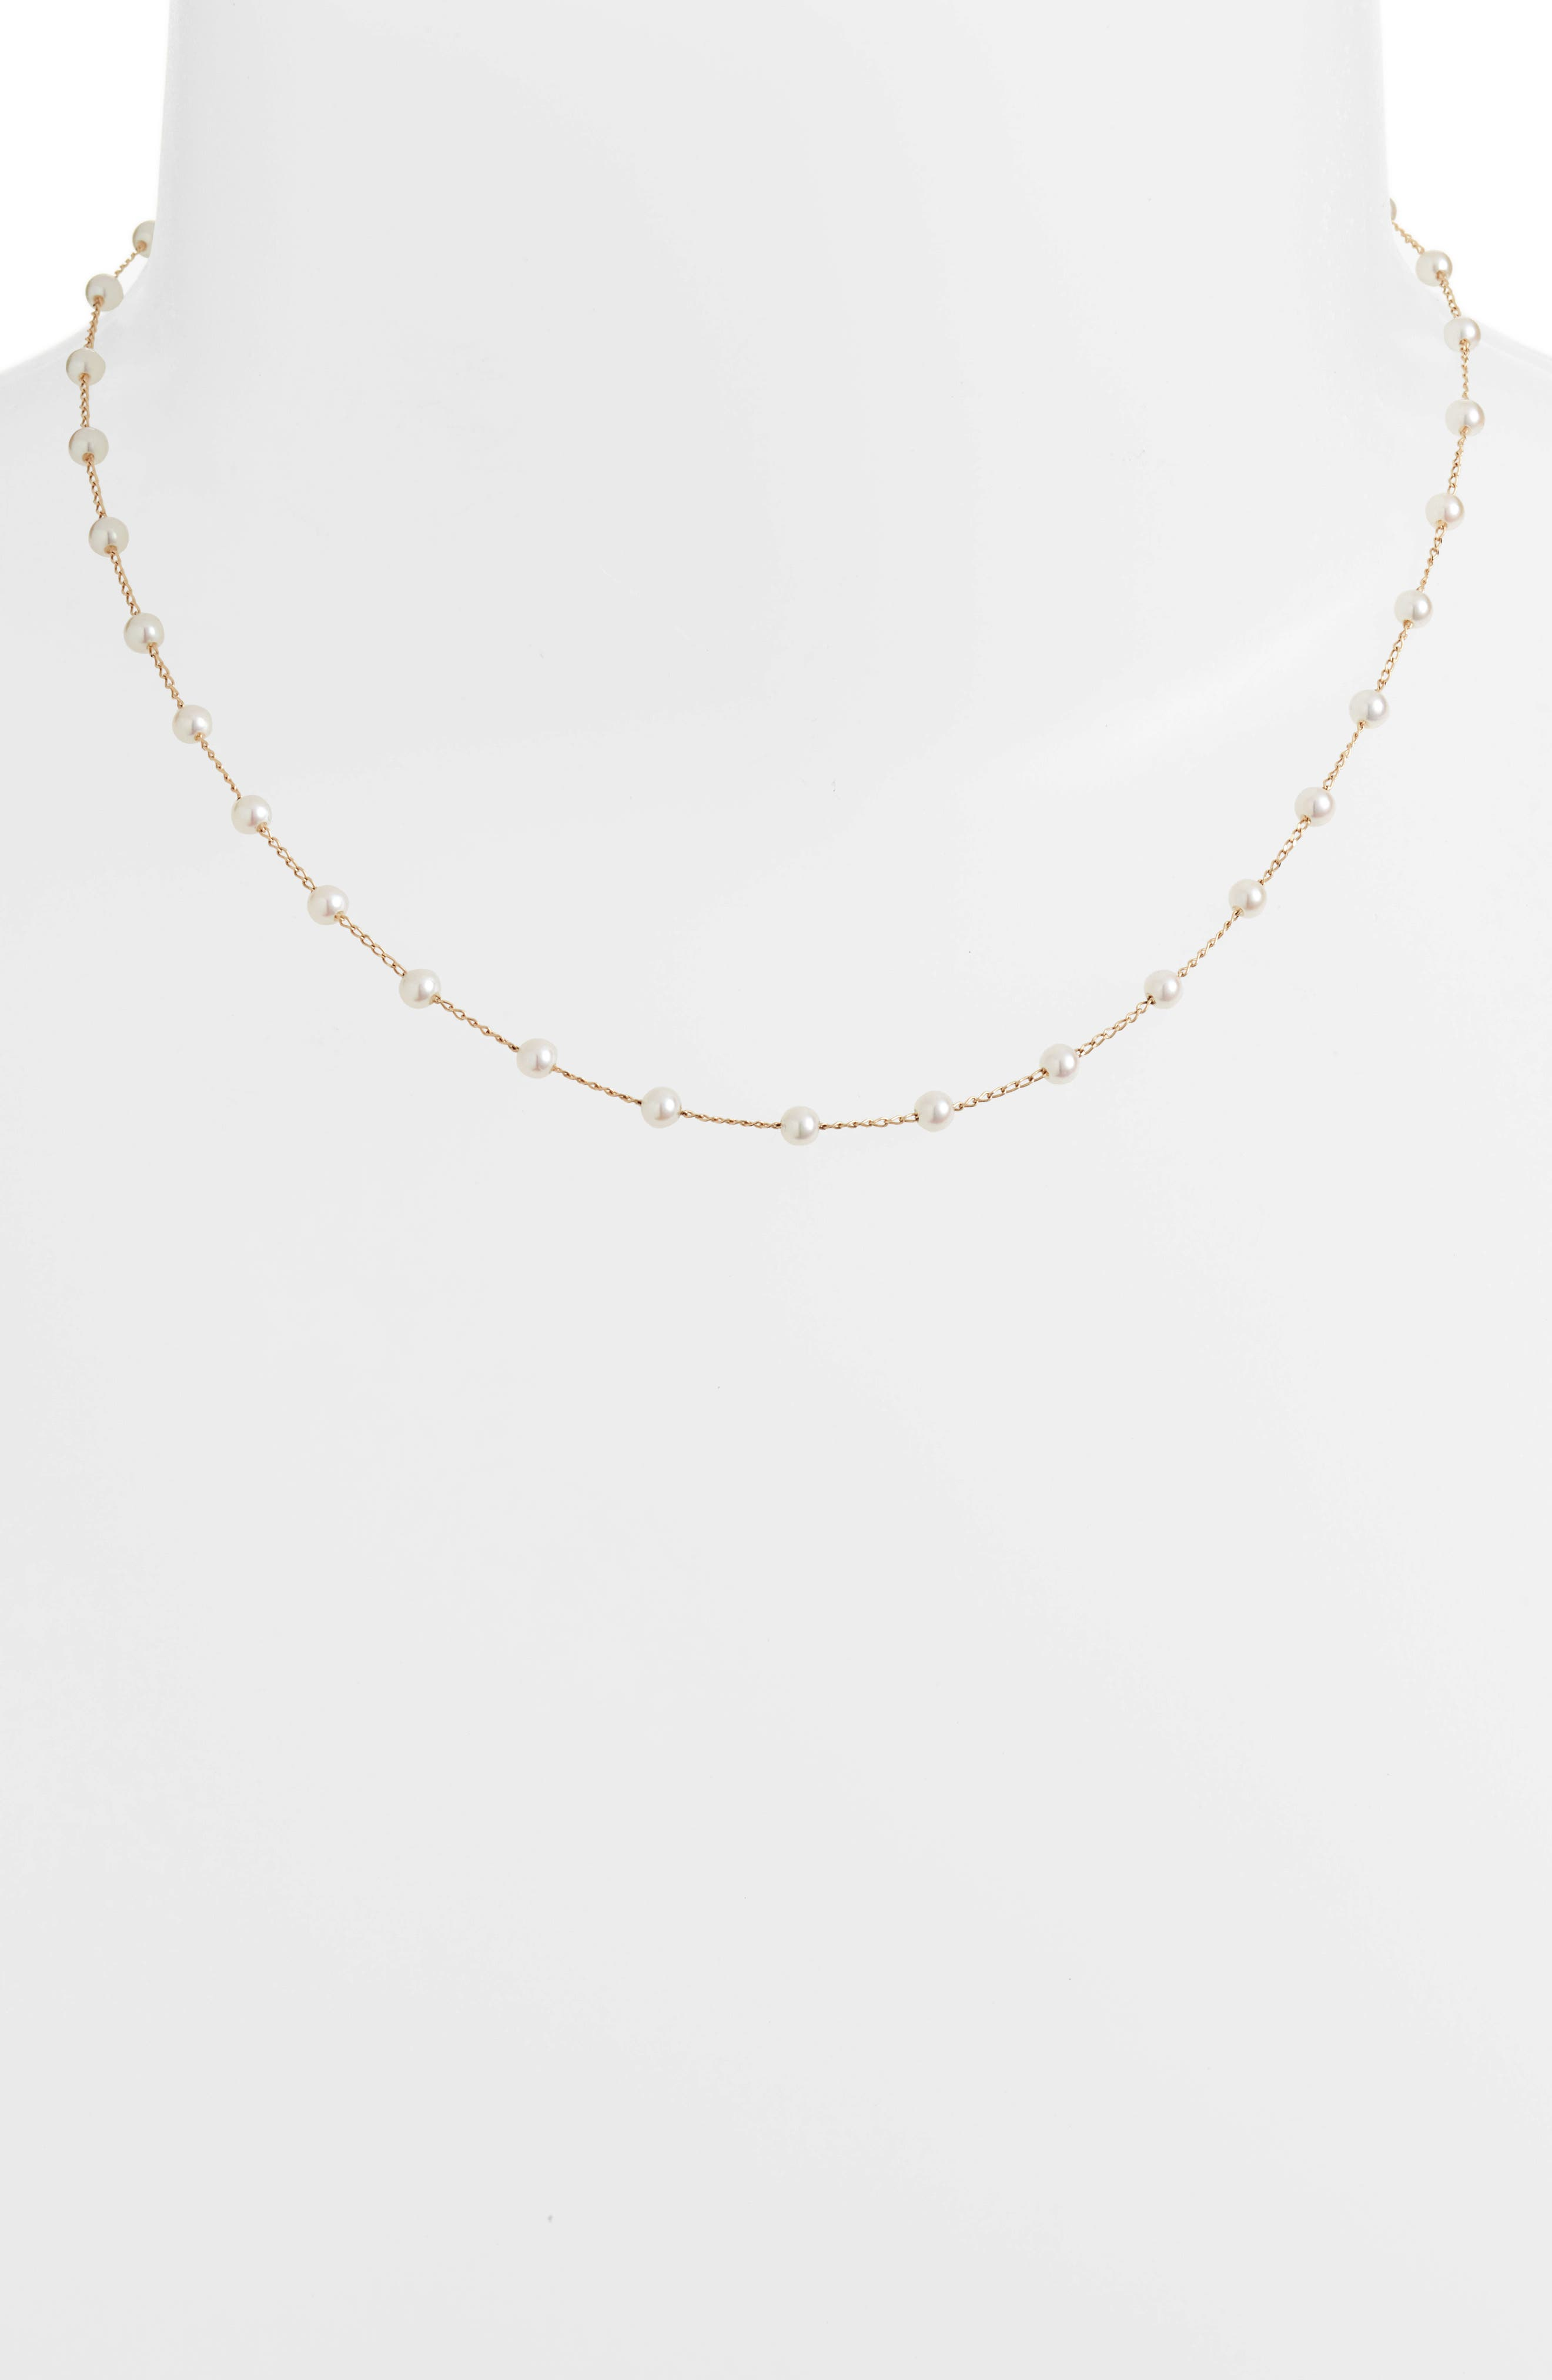 Pearl Choker Necklace,                             Alternate thumbnail 2, color,                             710